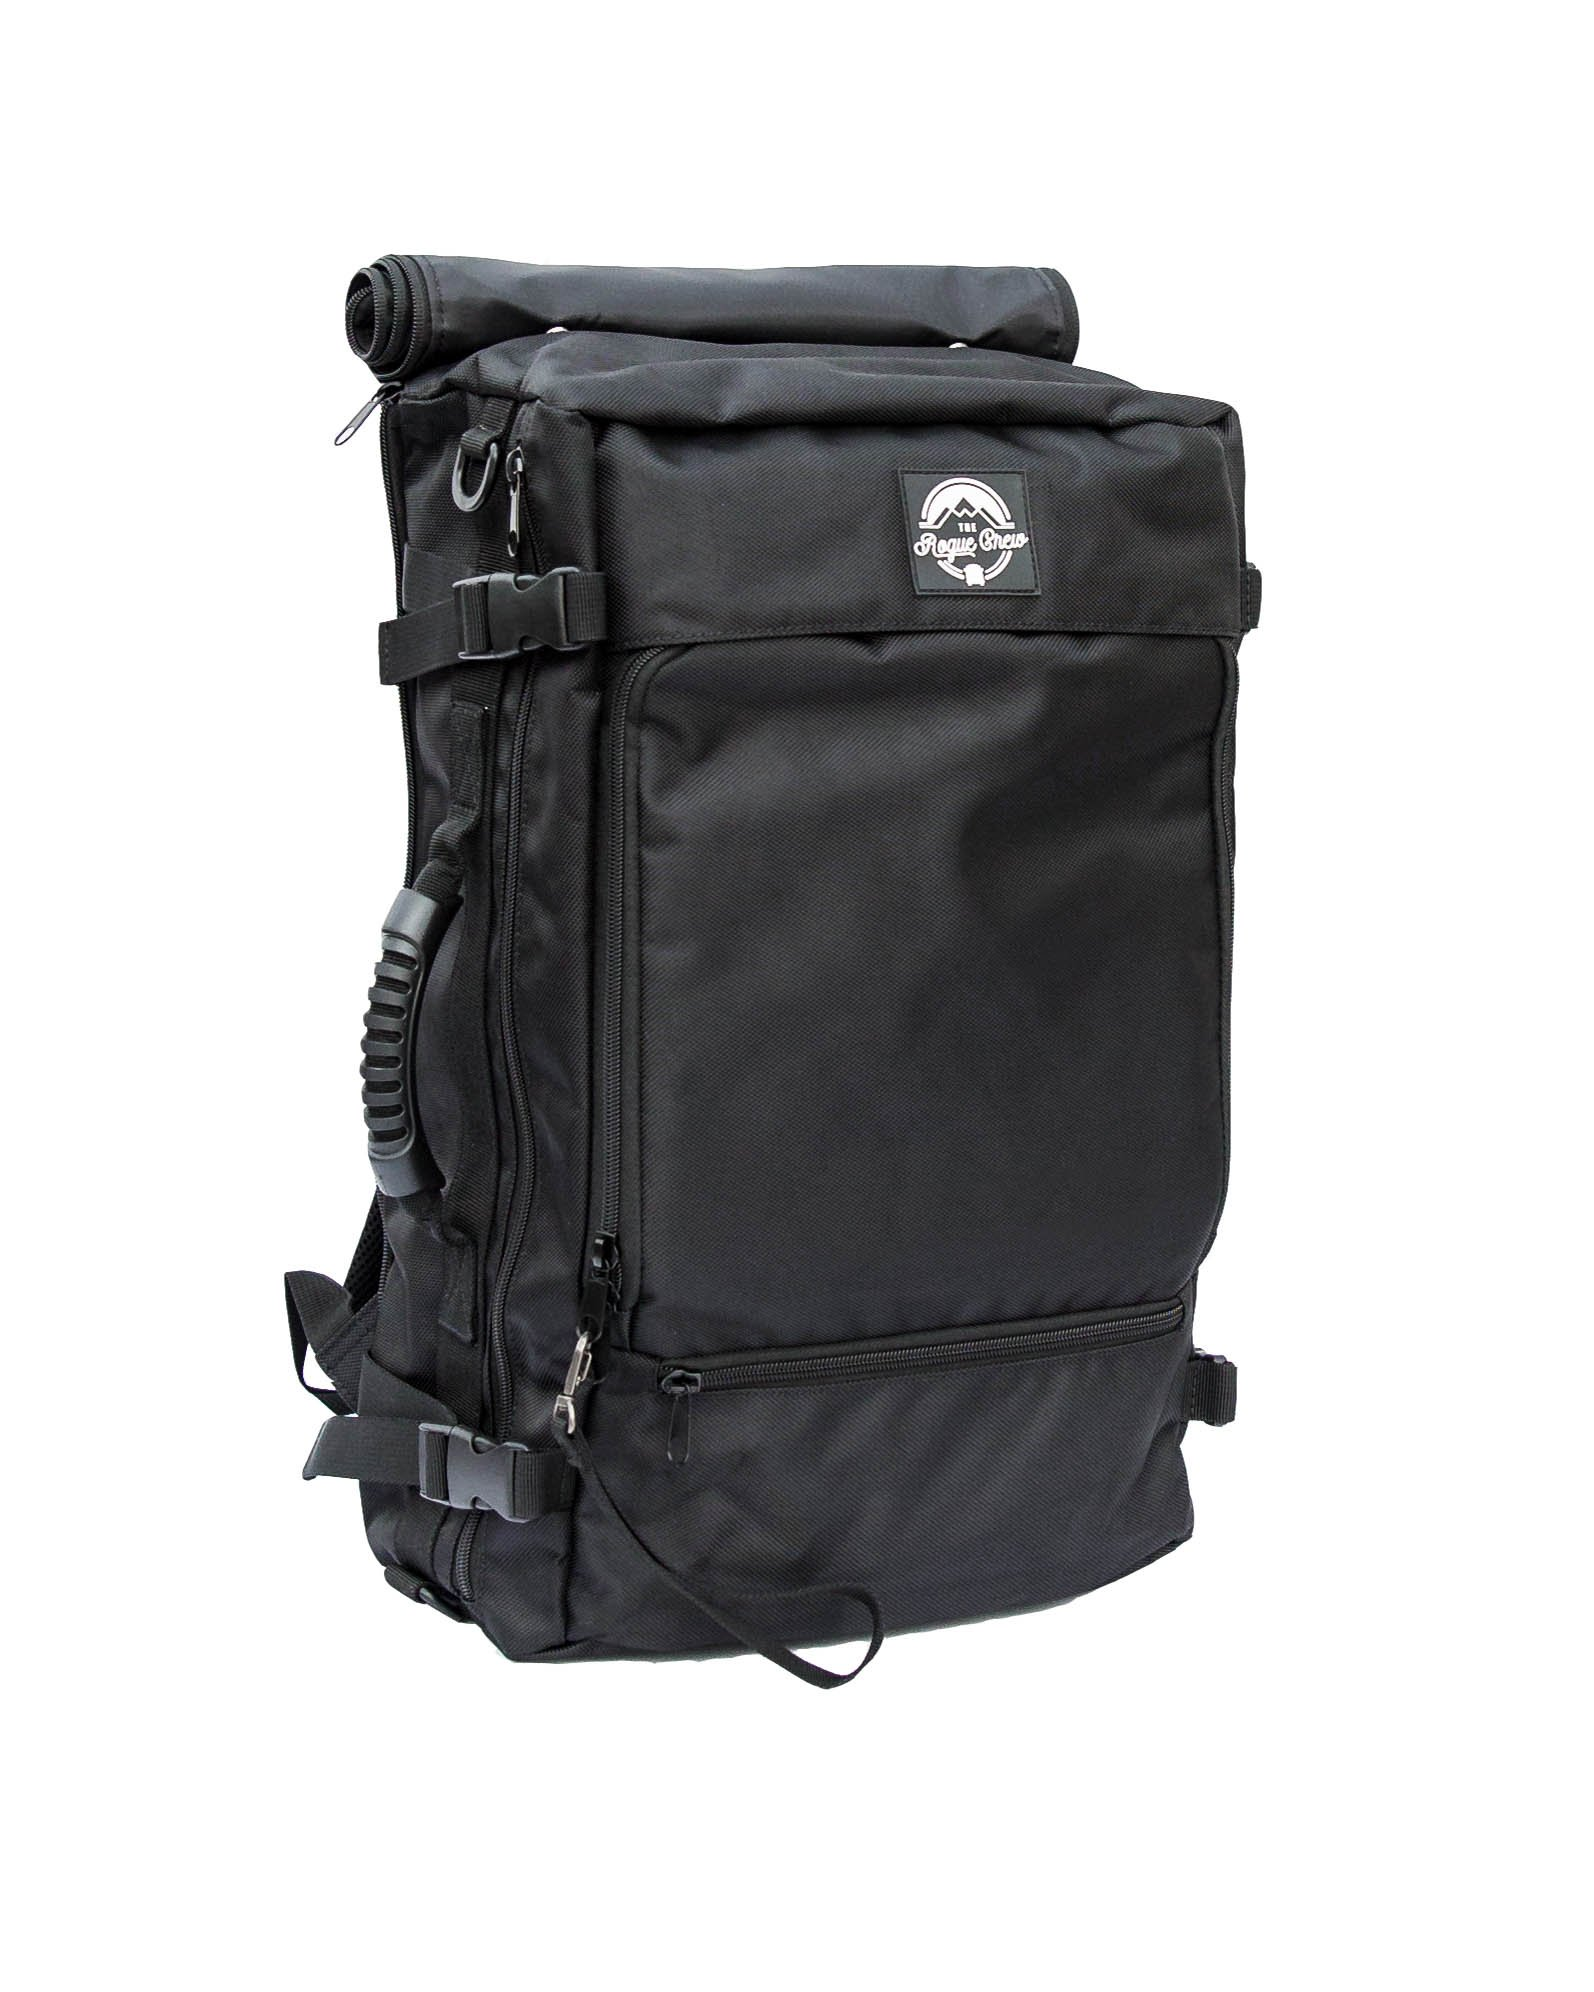 Rogue Crew Extra-Large DSLR Camera Backpack with 15-inch Laptop Holder, 31.35 Liter, Black